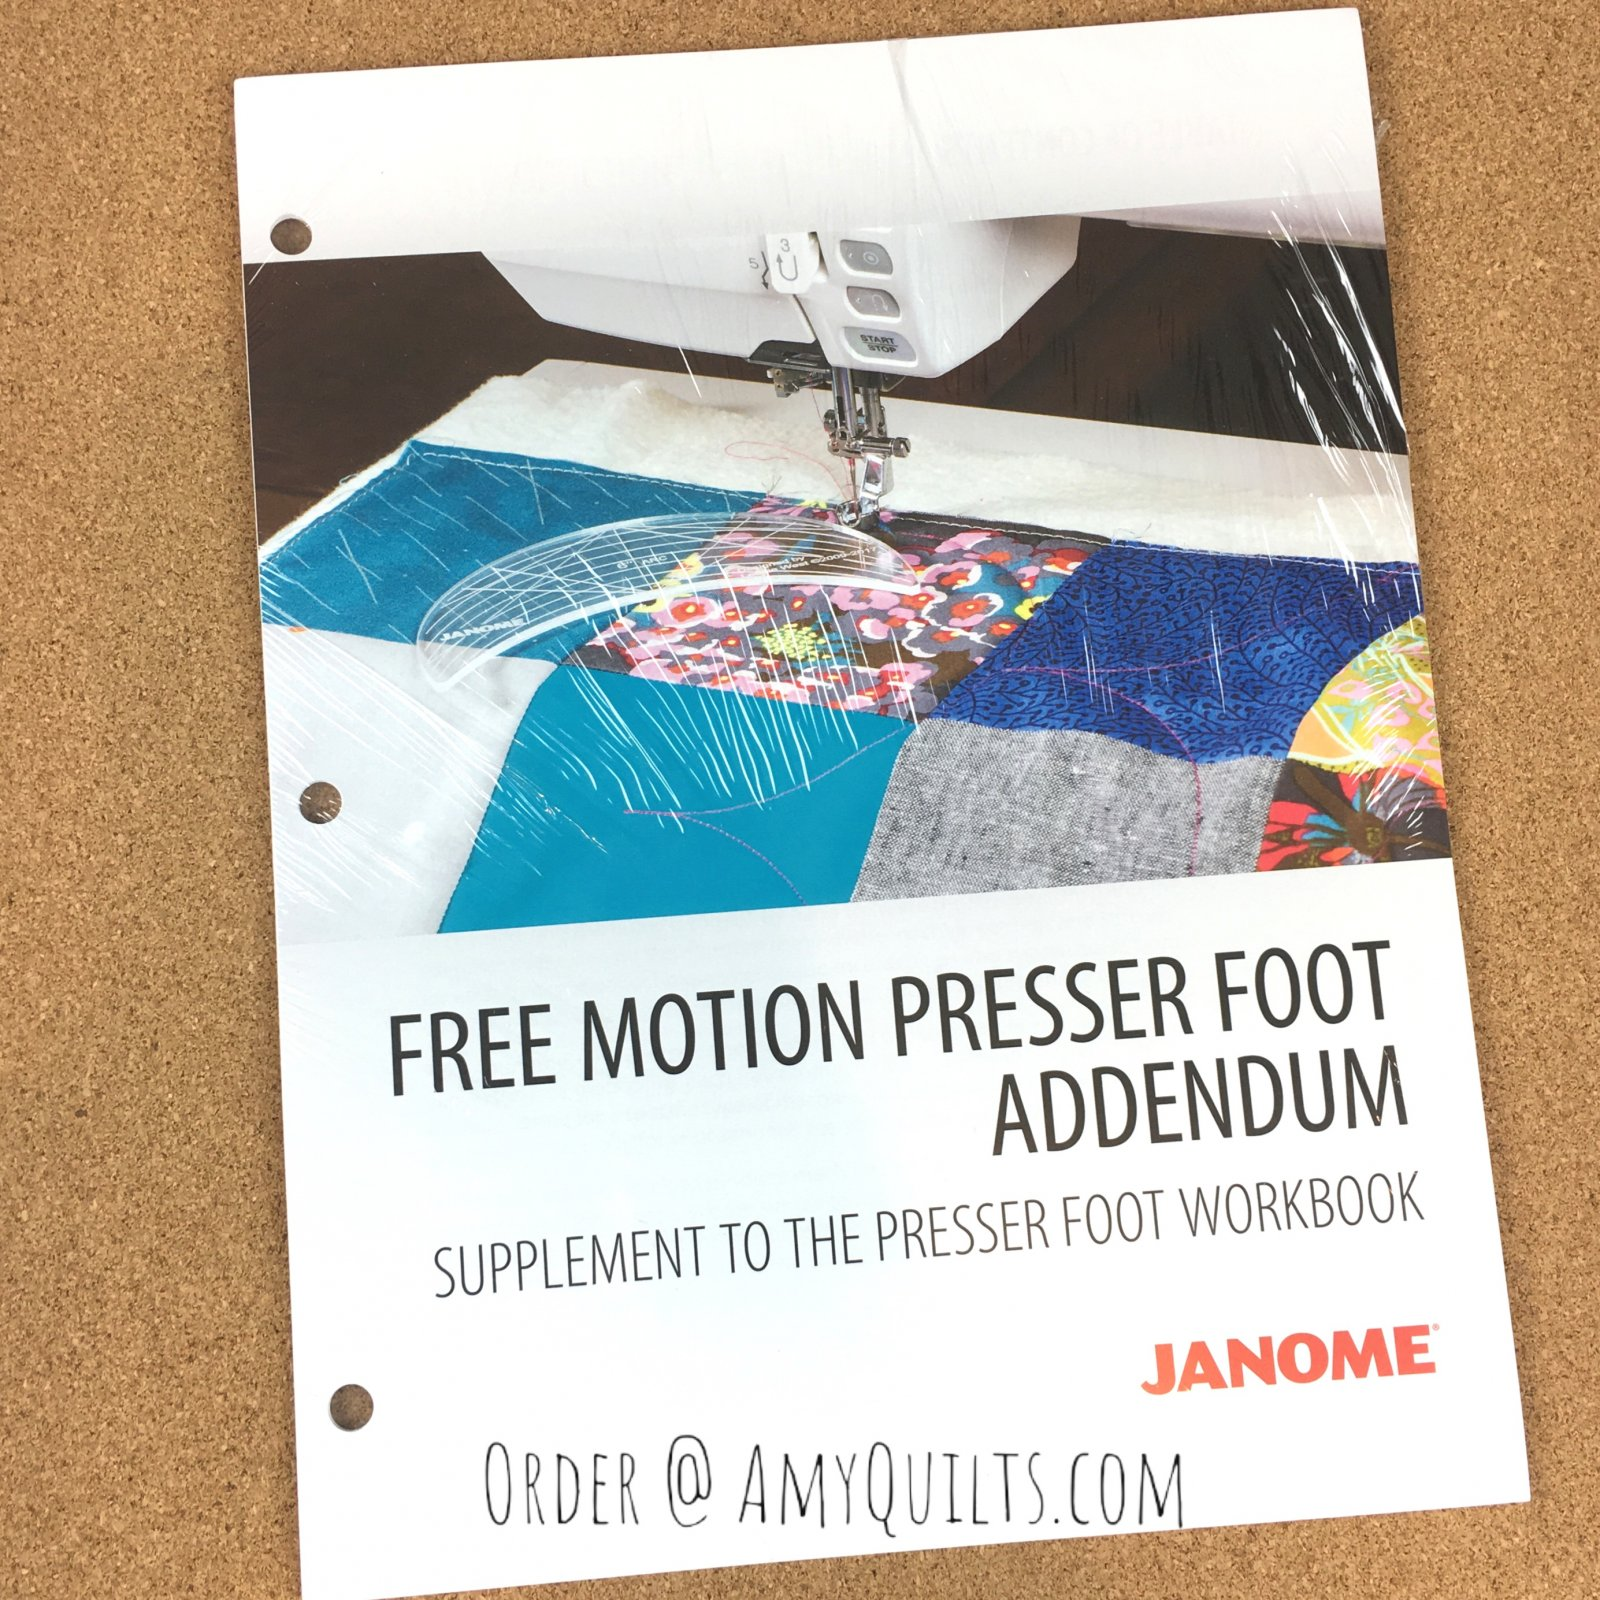 Janome Free Motion Presser Foot Addendum